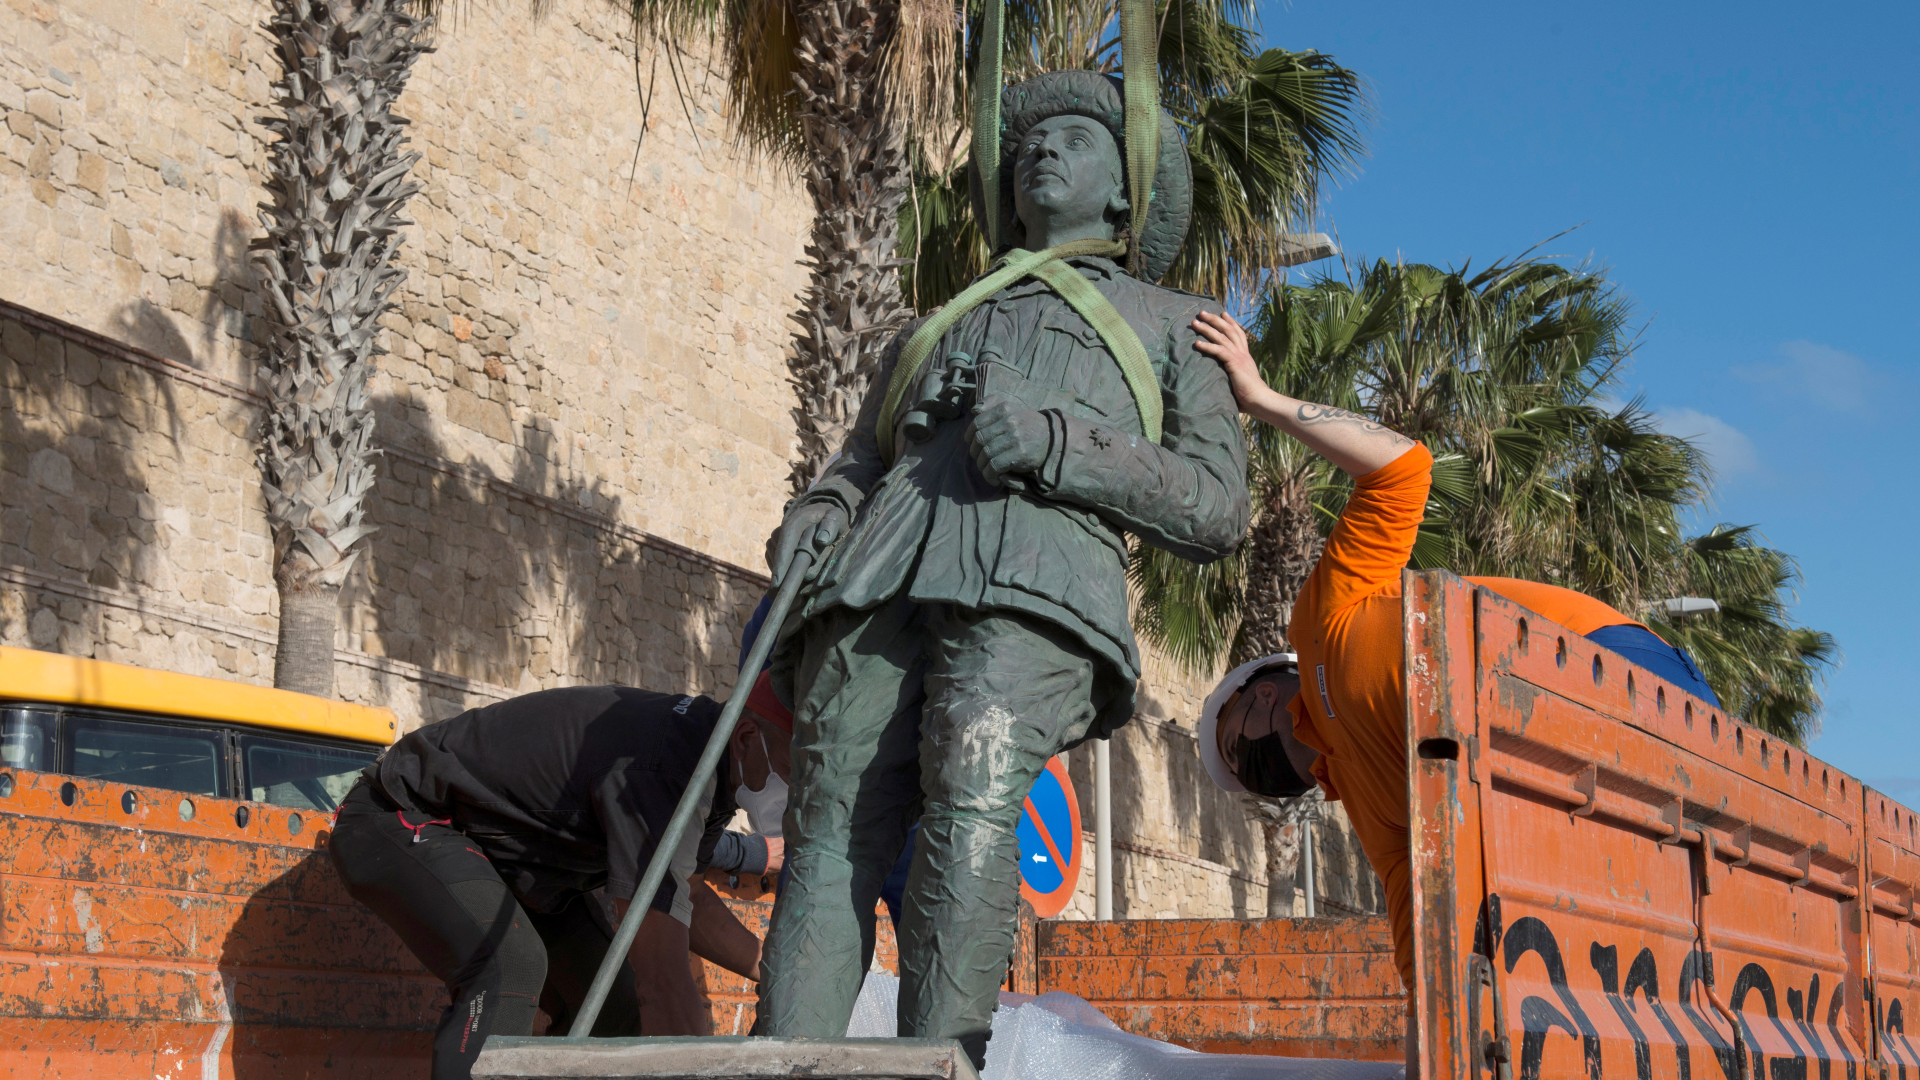 Last statue of dictator Francisco Franco removed from Spanish soil